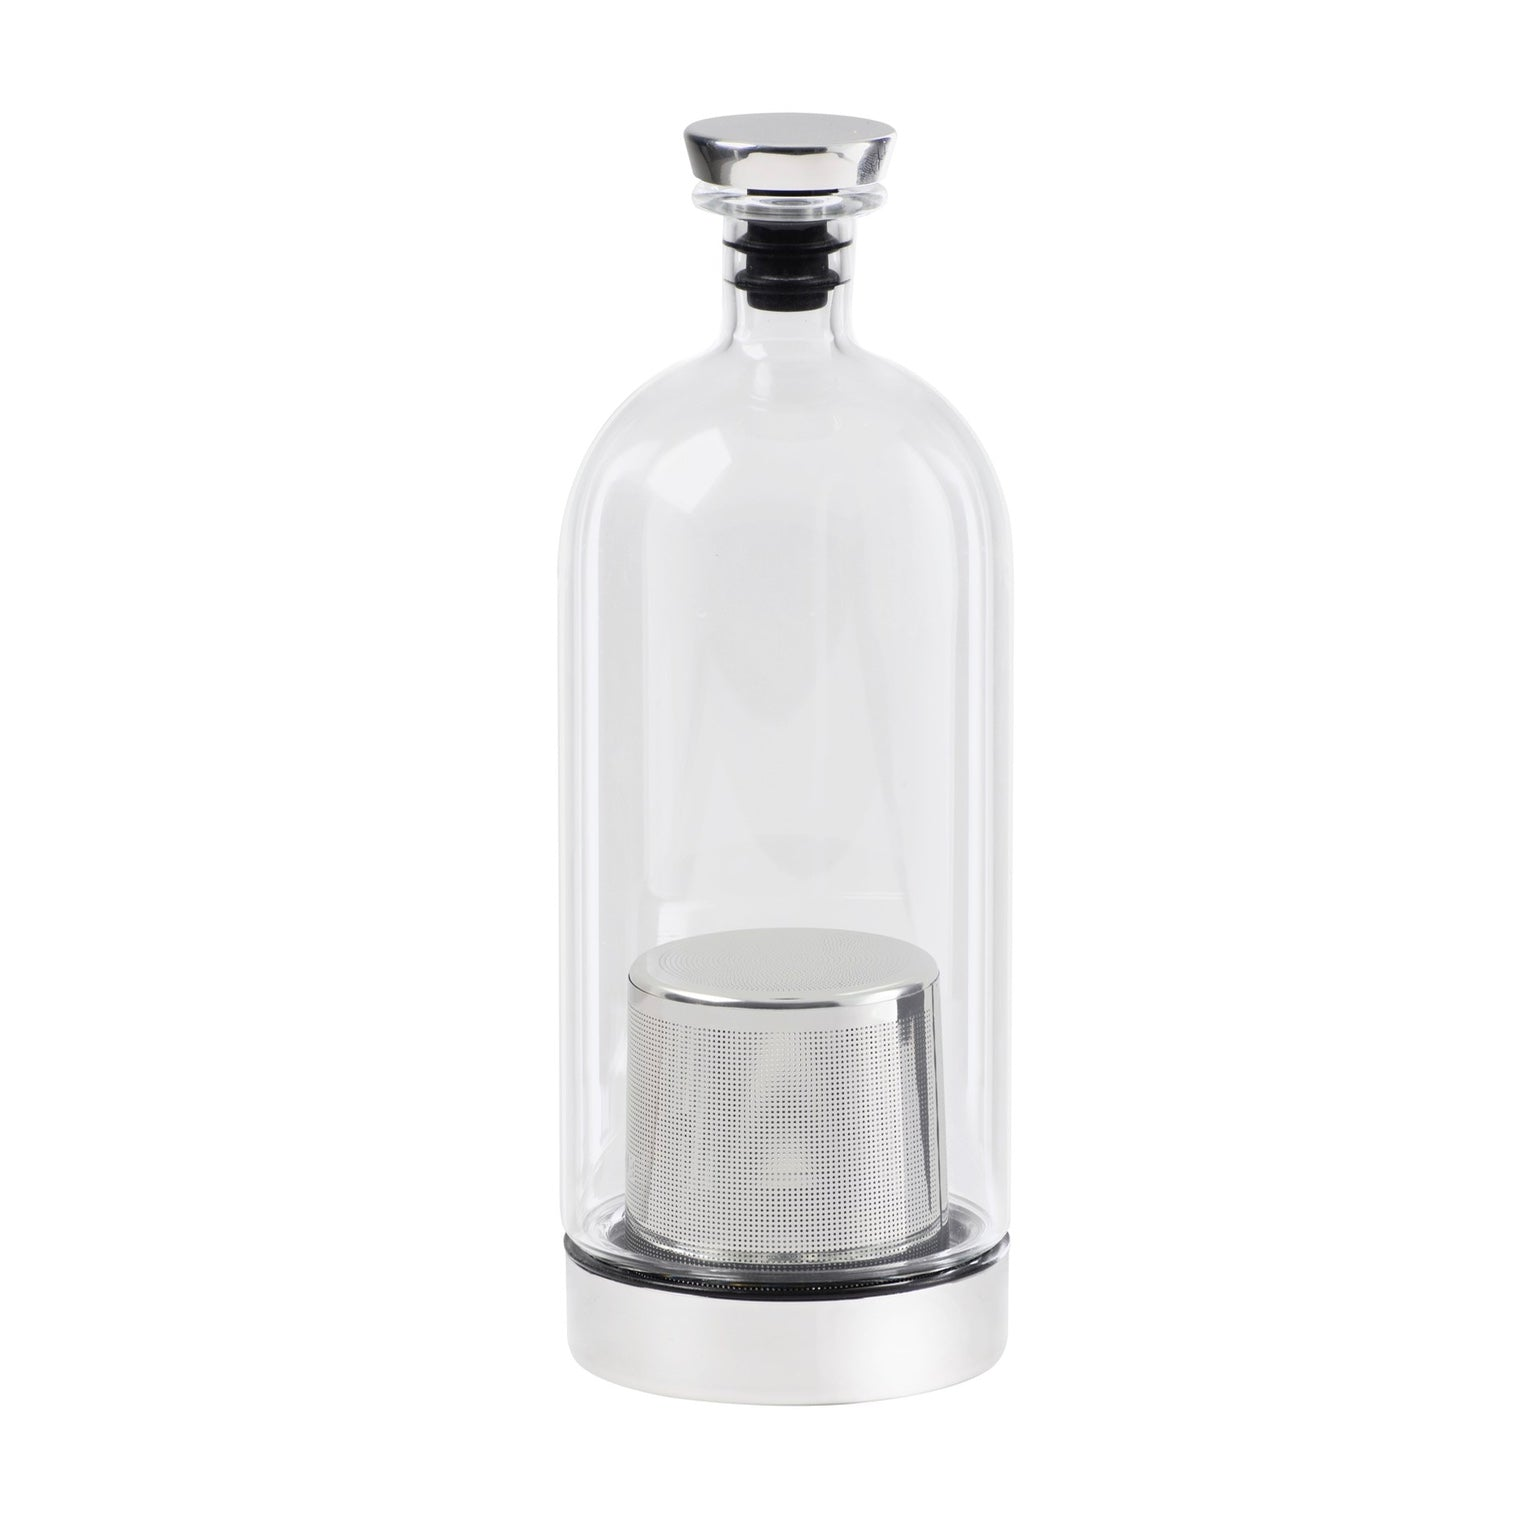 Alkemista Infusion Vessel - Stainless Steel | Putti Fine Furnishings